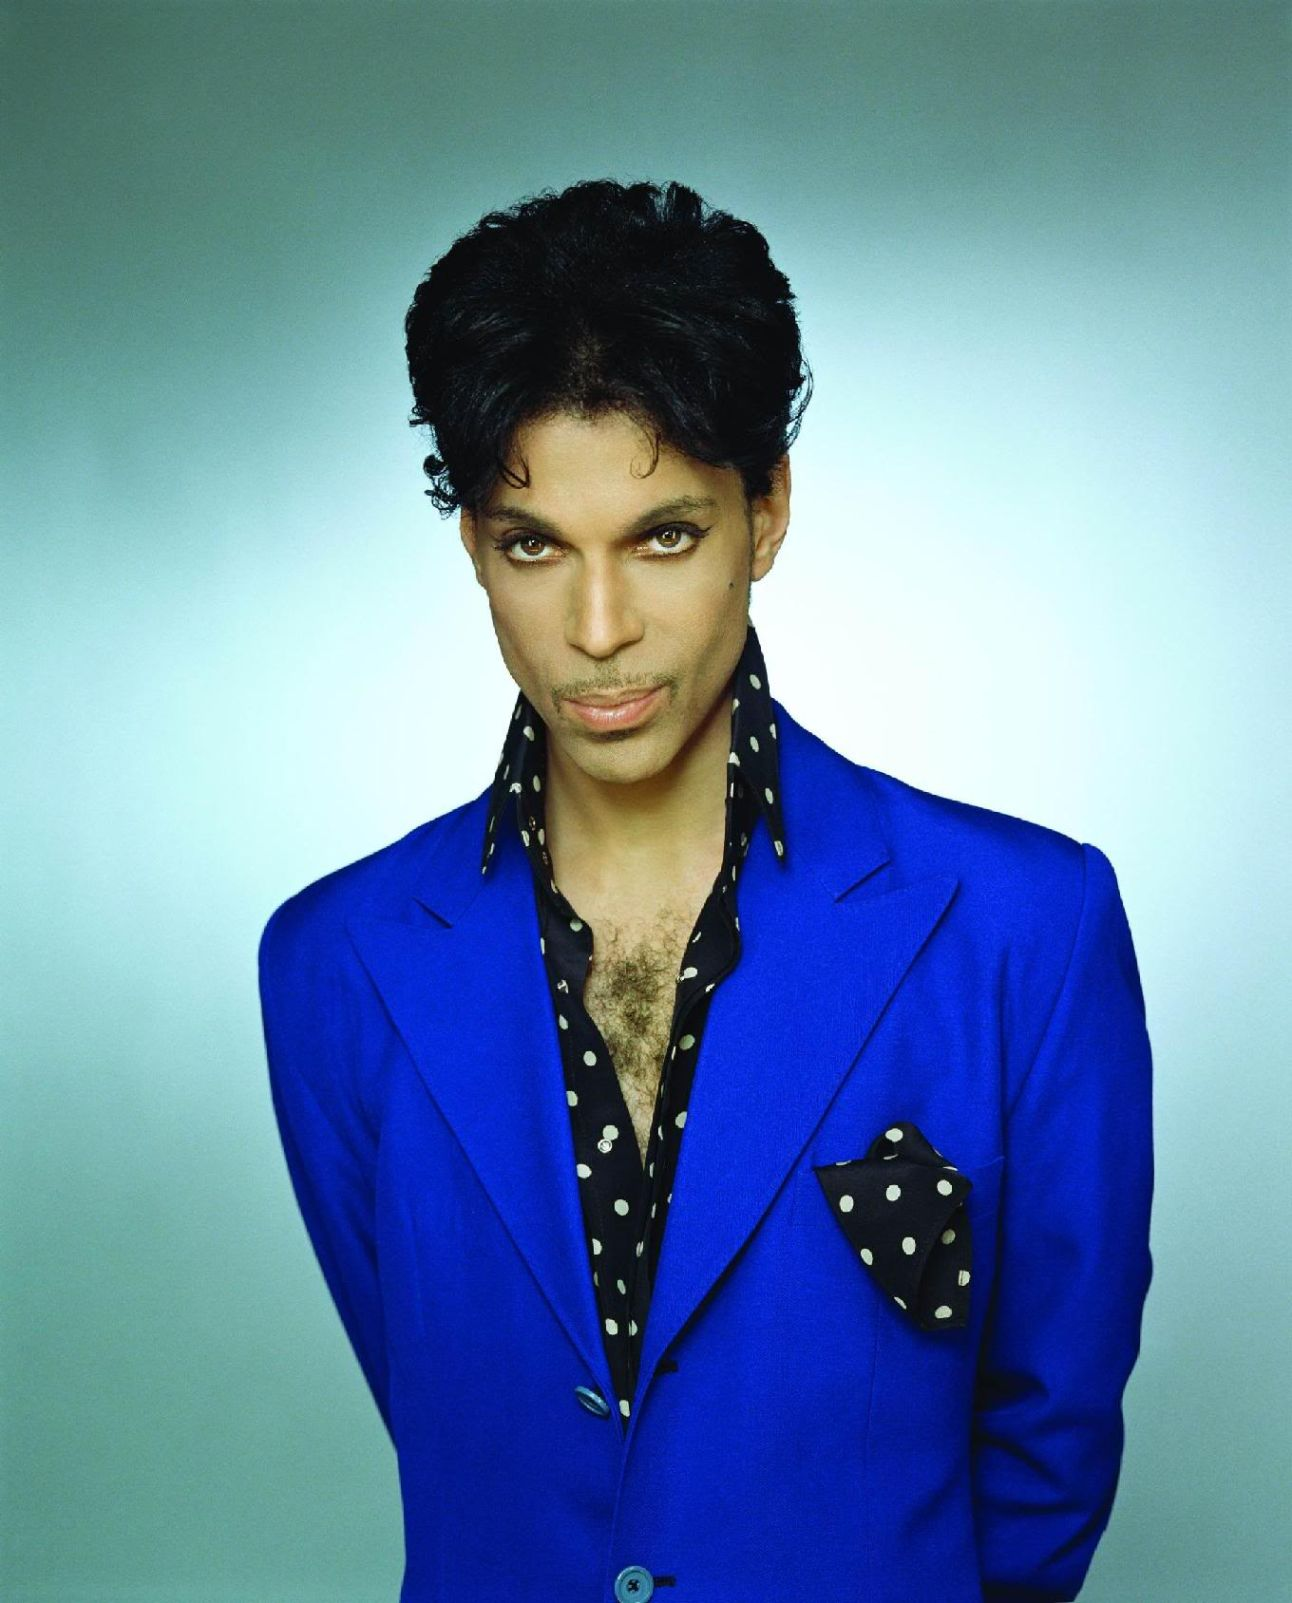 Prince's sisters can't agree on which color was his favorite